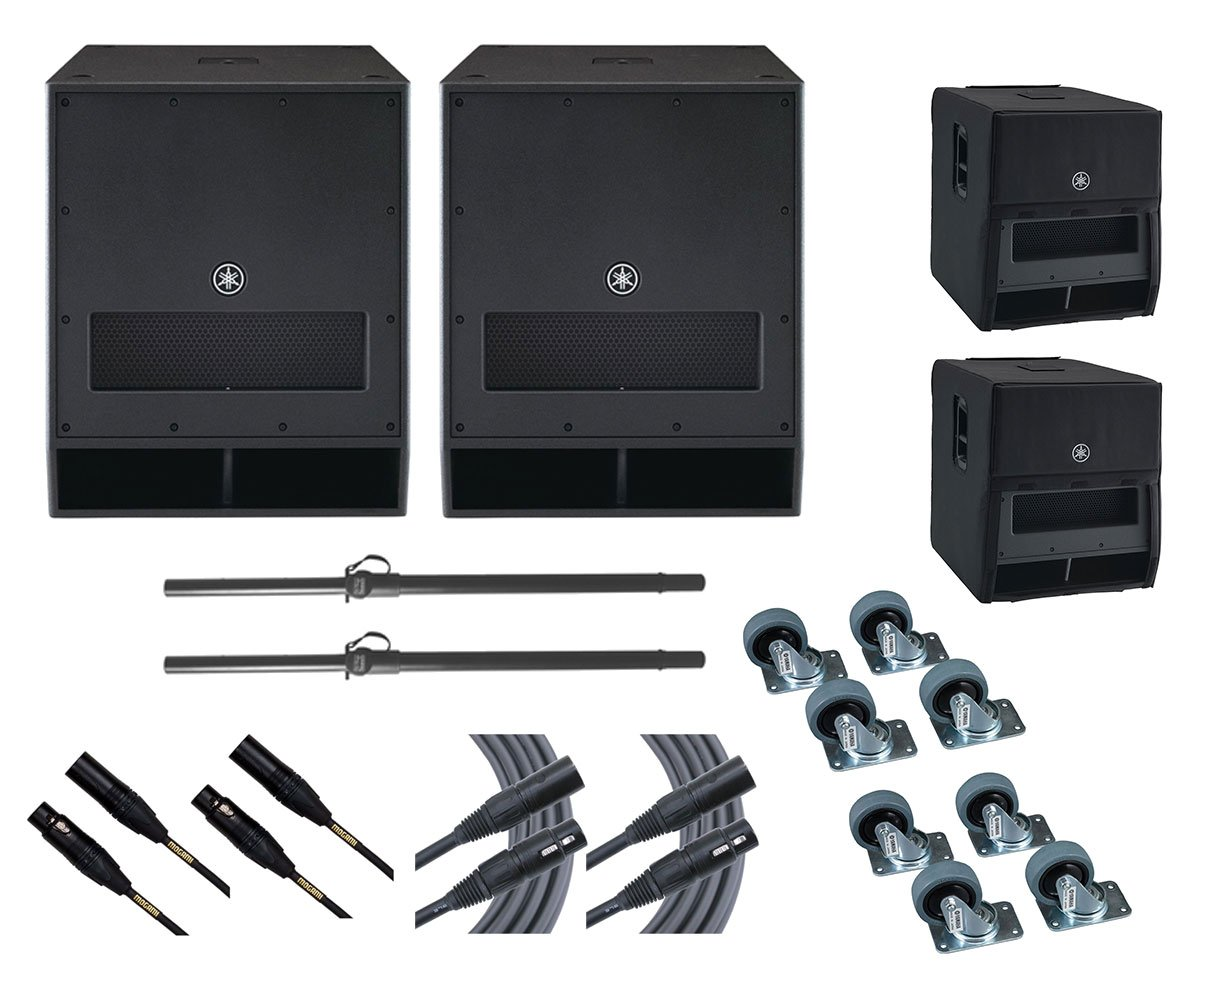 2x Yamaha DXS18 Subwoofer Speaker +Stands +Covers +Mogami Cables +Wheel Kits